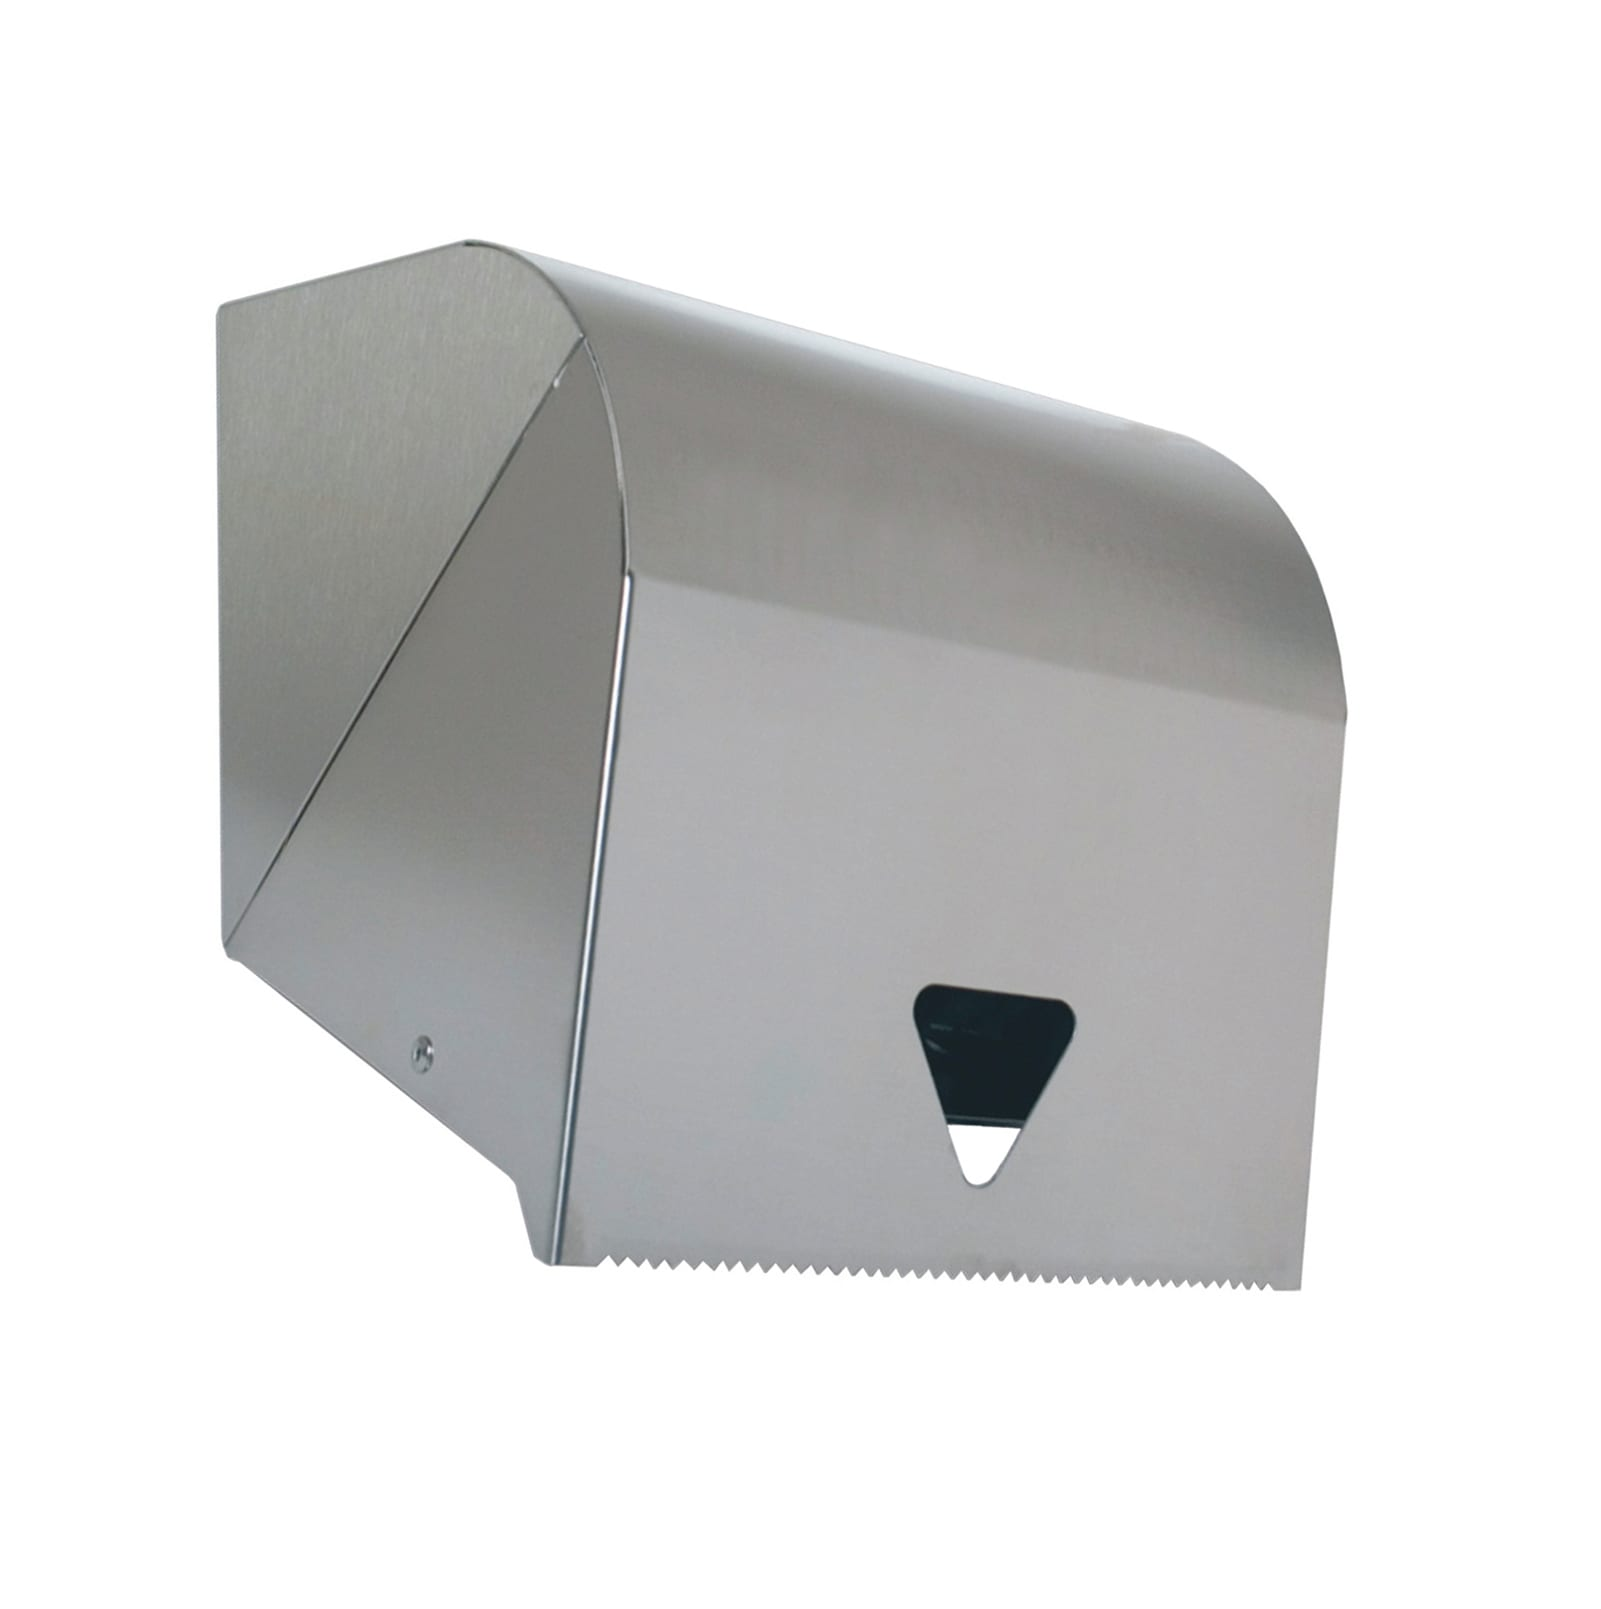 Paper Towel Dispenser Peenmedia Com